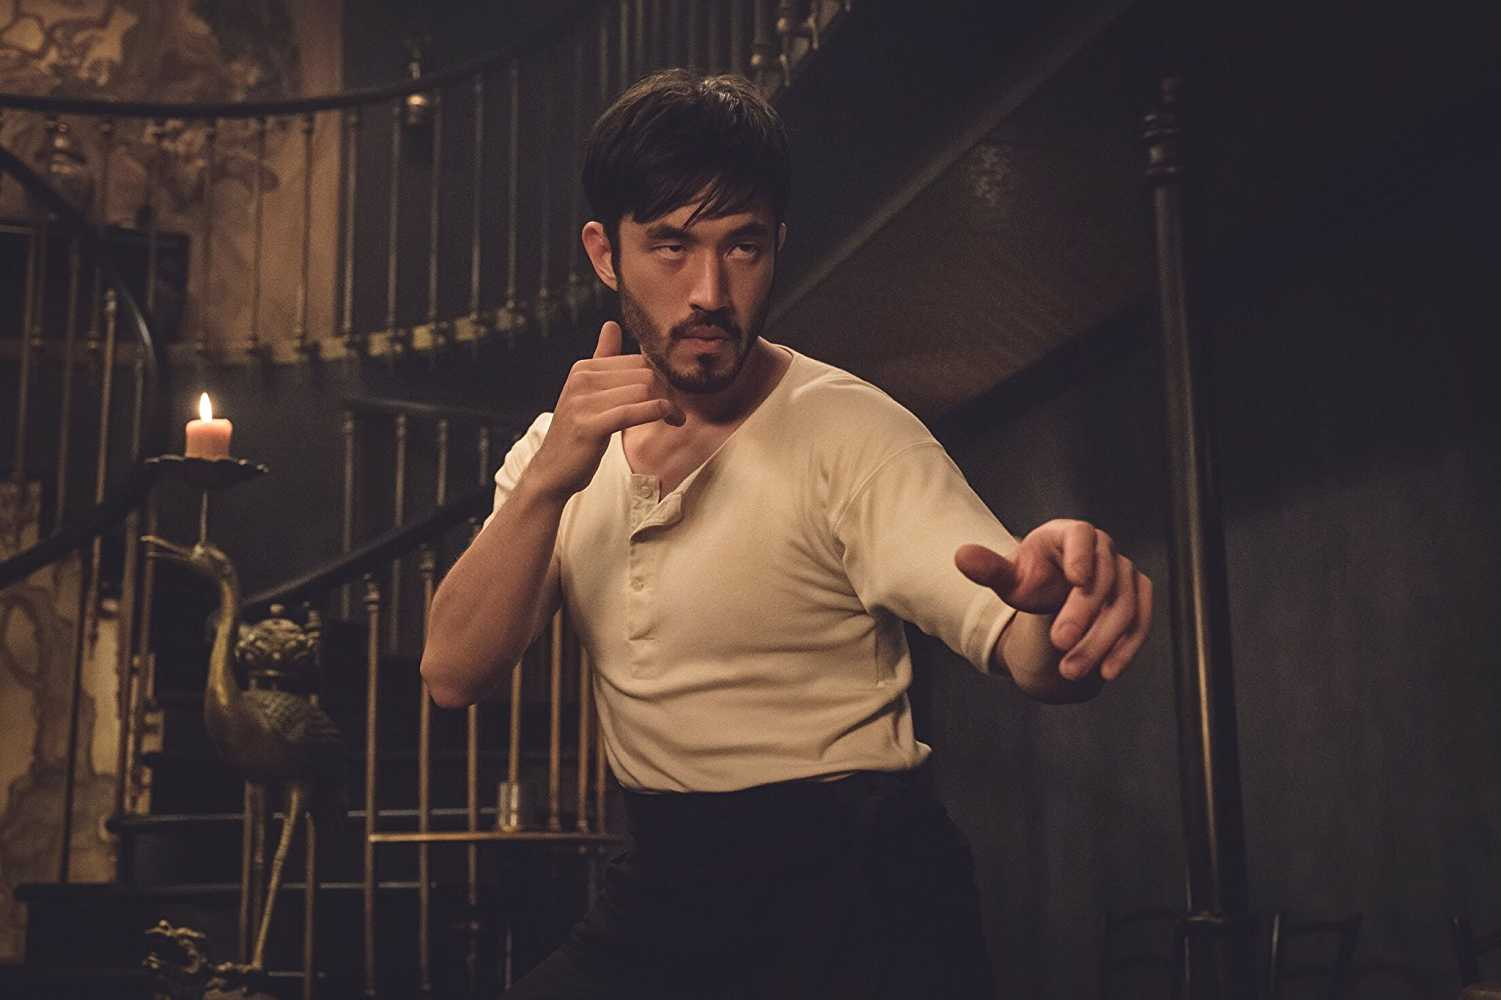 Ah Sahm, played by Andrew Koji, is a newly arrived Chinese immigrant with some serious fighting skills, who finds himself thrust in the midst of the Tong Wars(IMDb)